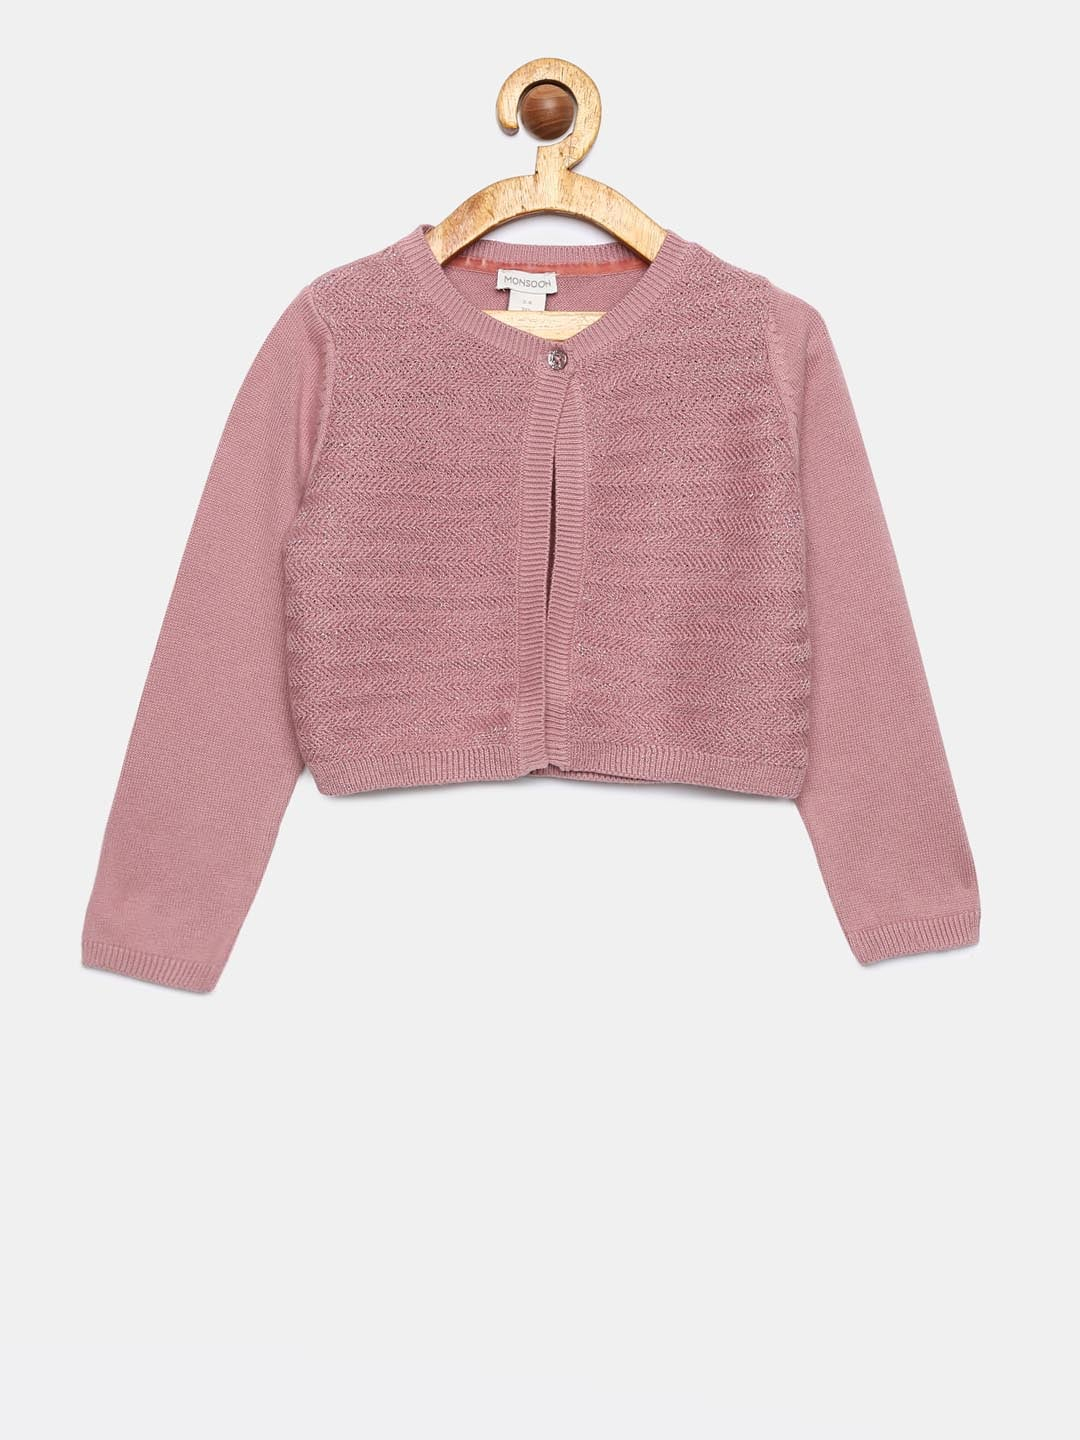 92ca93af7 Pink Long Sleeve - Buy Pink Long Sleeve online in India